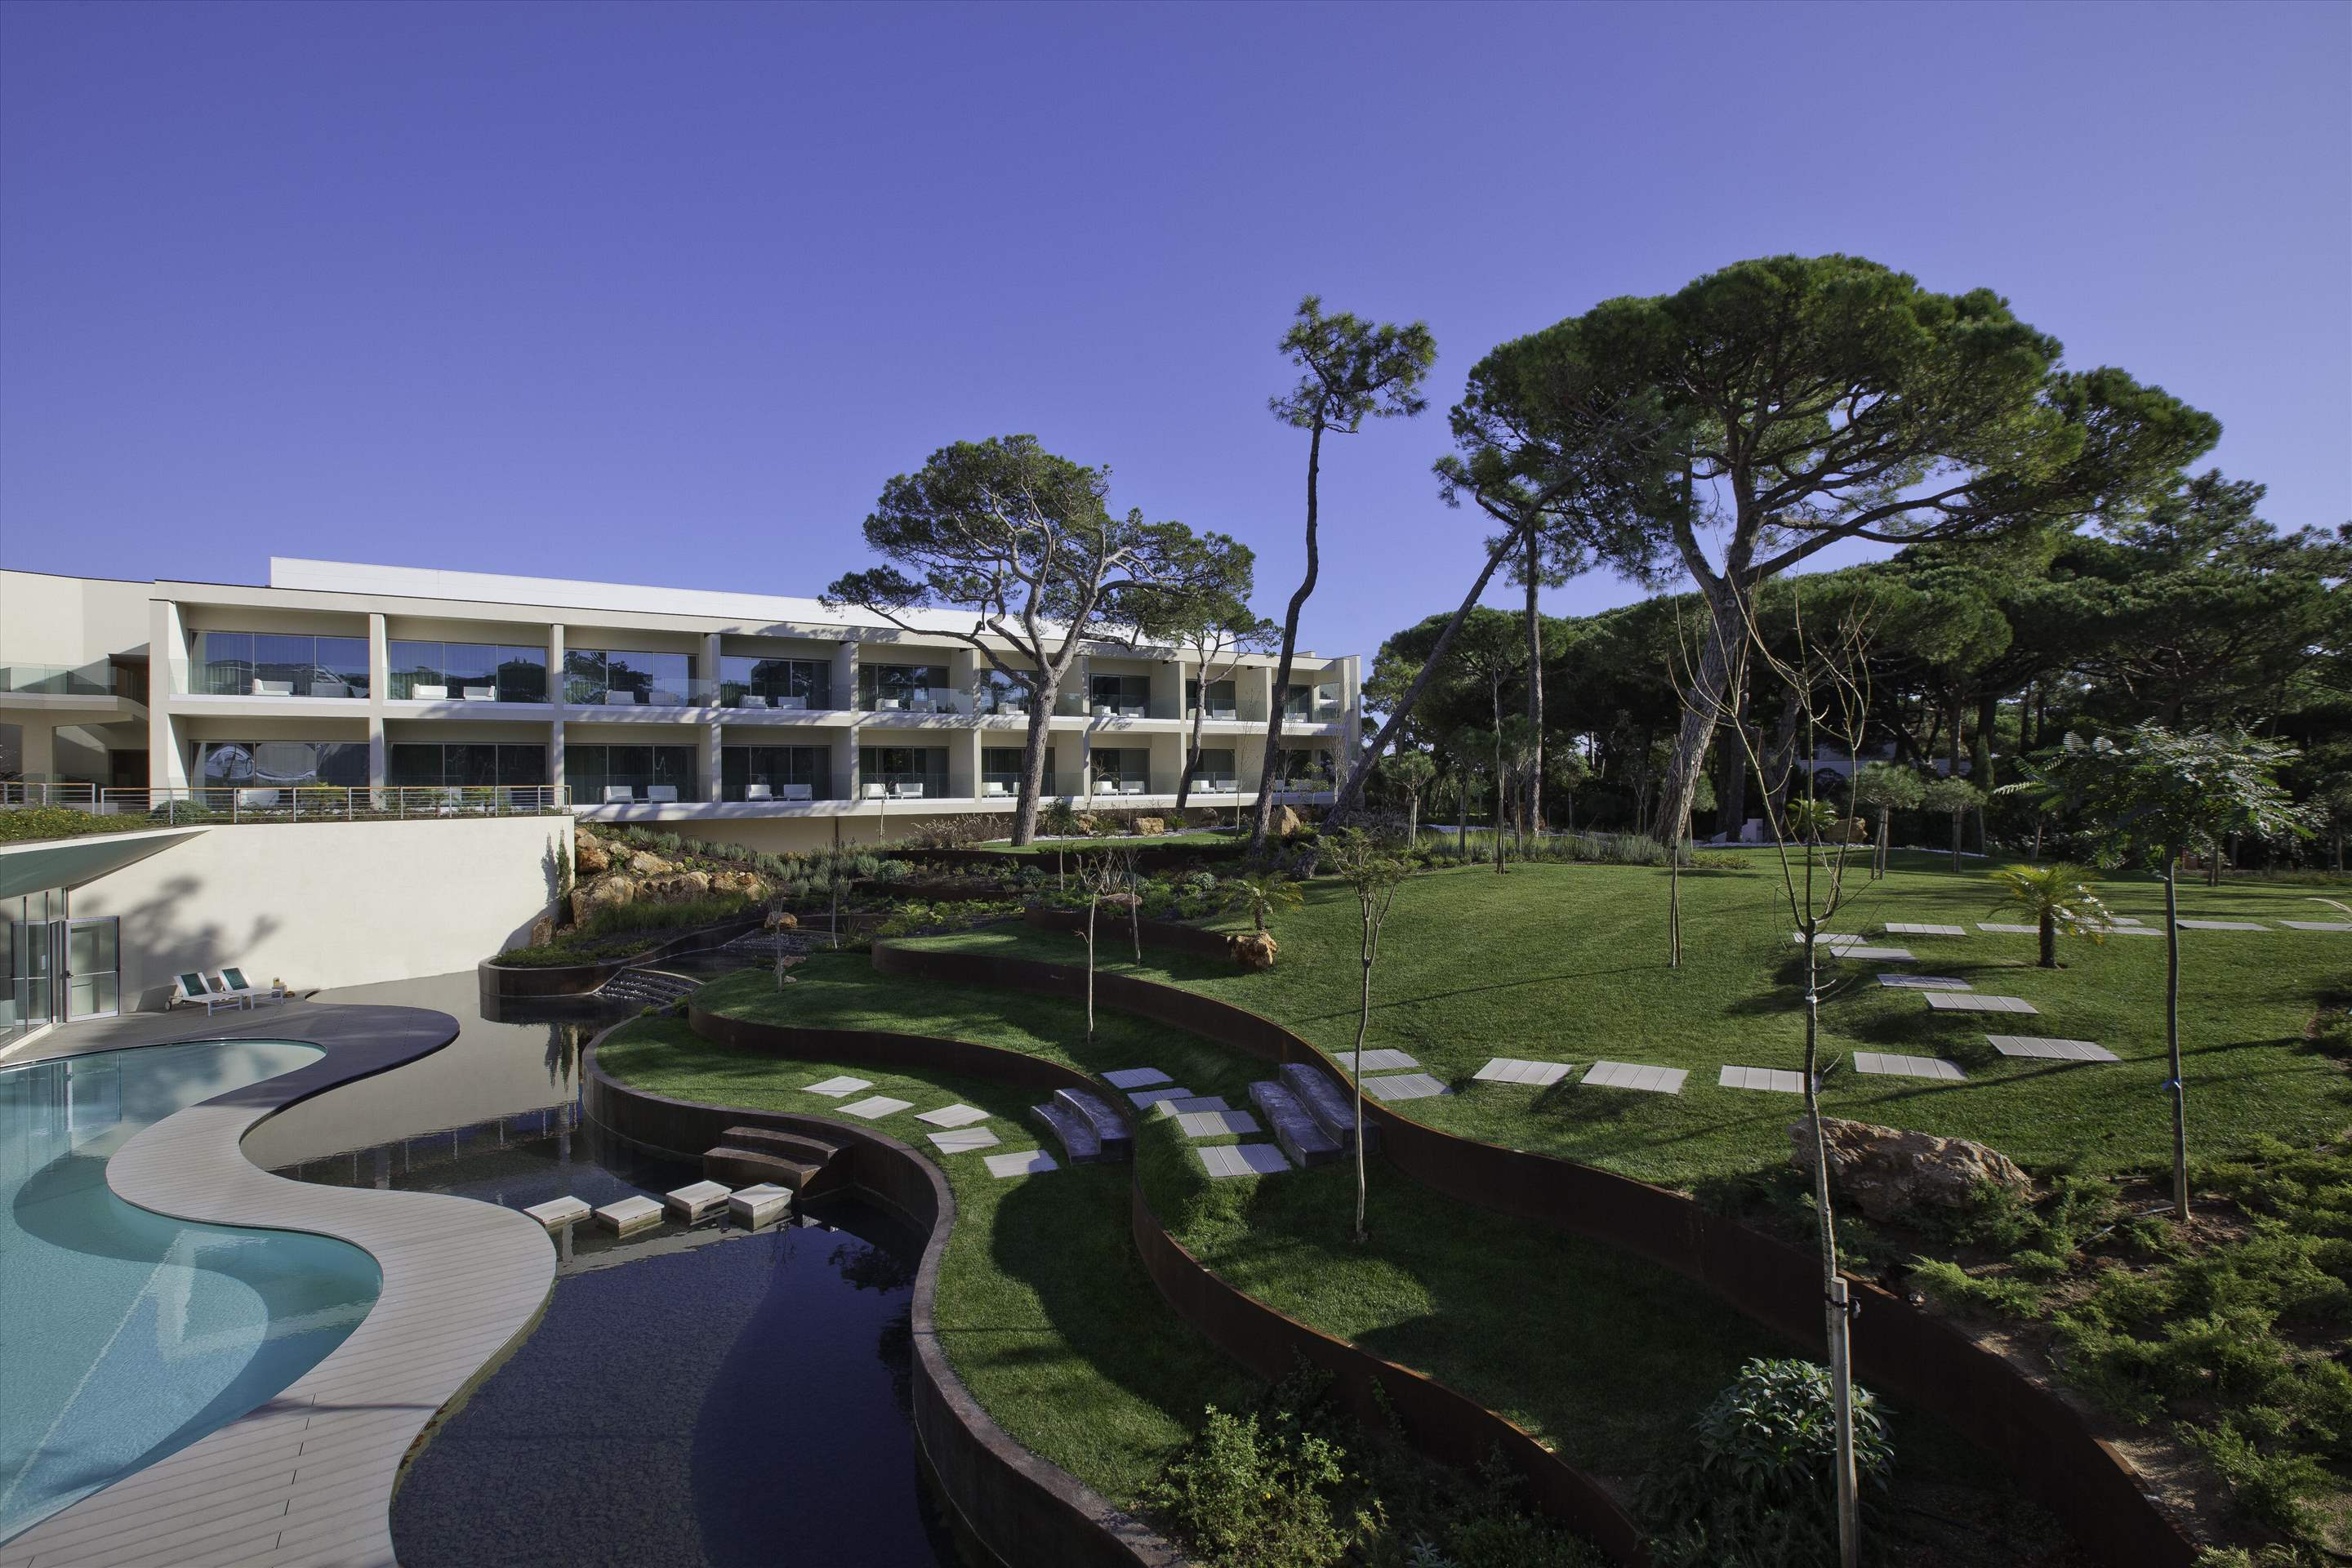 Martinhal Cascais Hotel, Deluxe Suite, BB Basis, 1 bedroom hotel in Lisbon Coast, Lisbon Photo #1